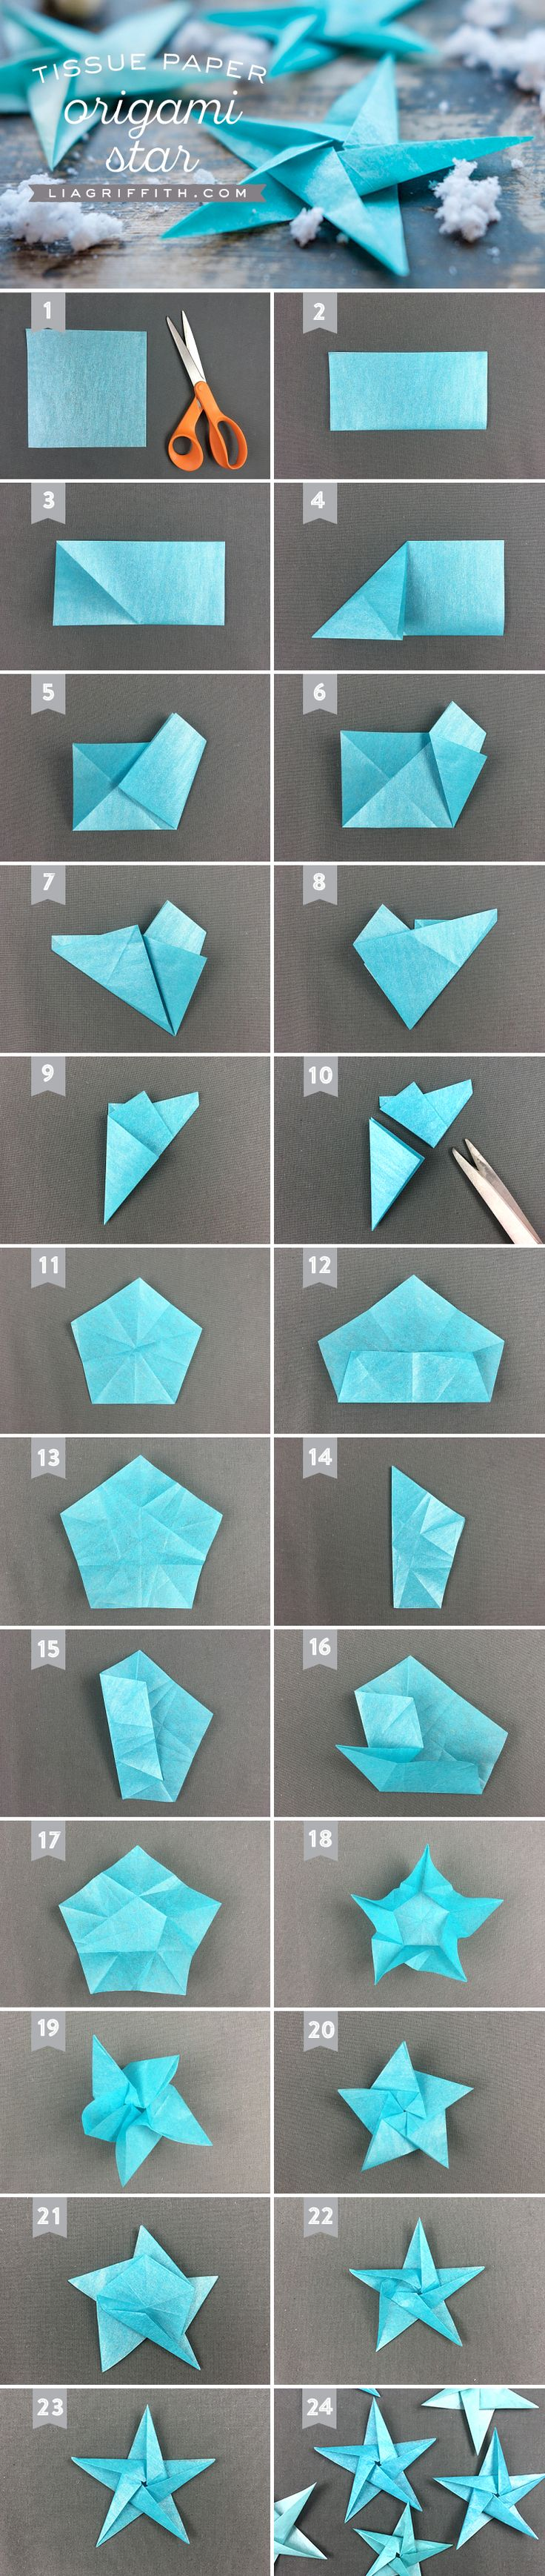 Tissue Star Origami Christmas Ornaments